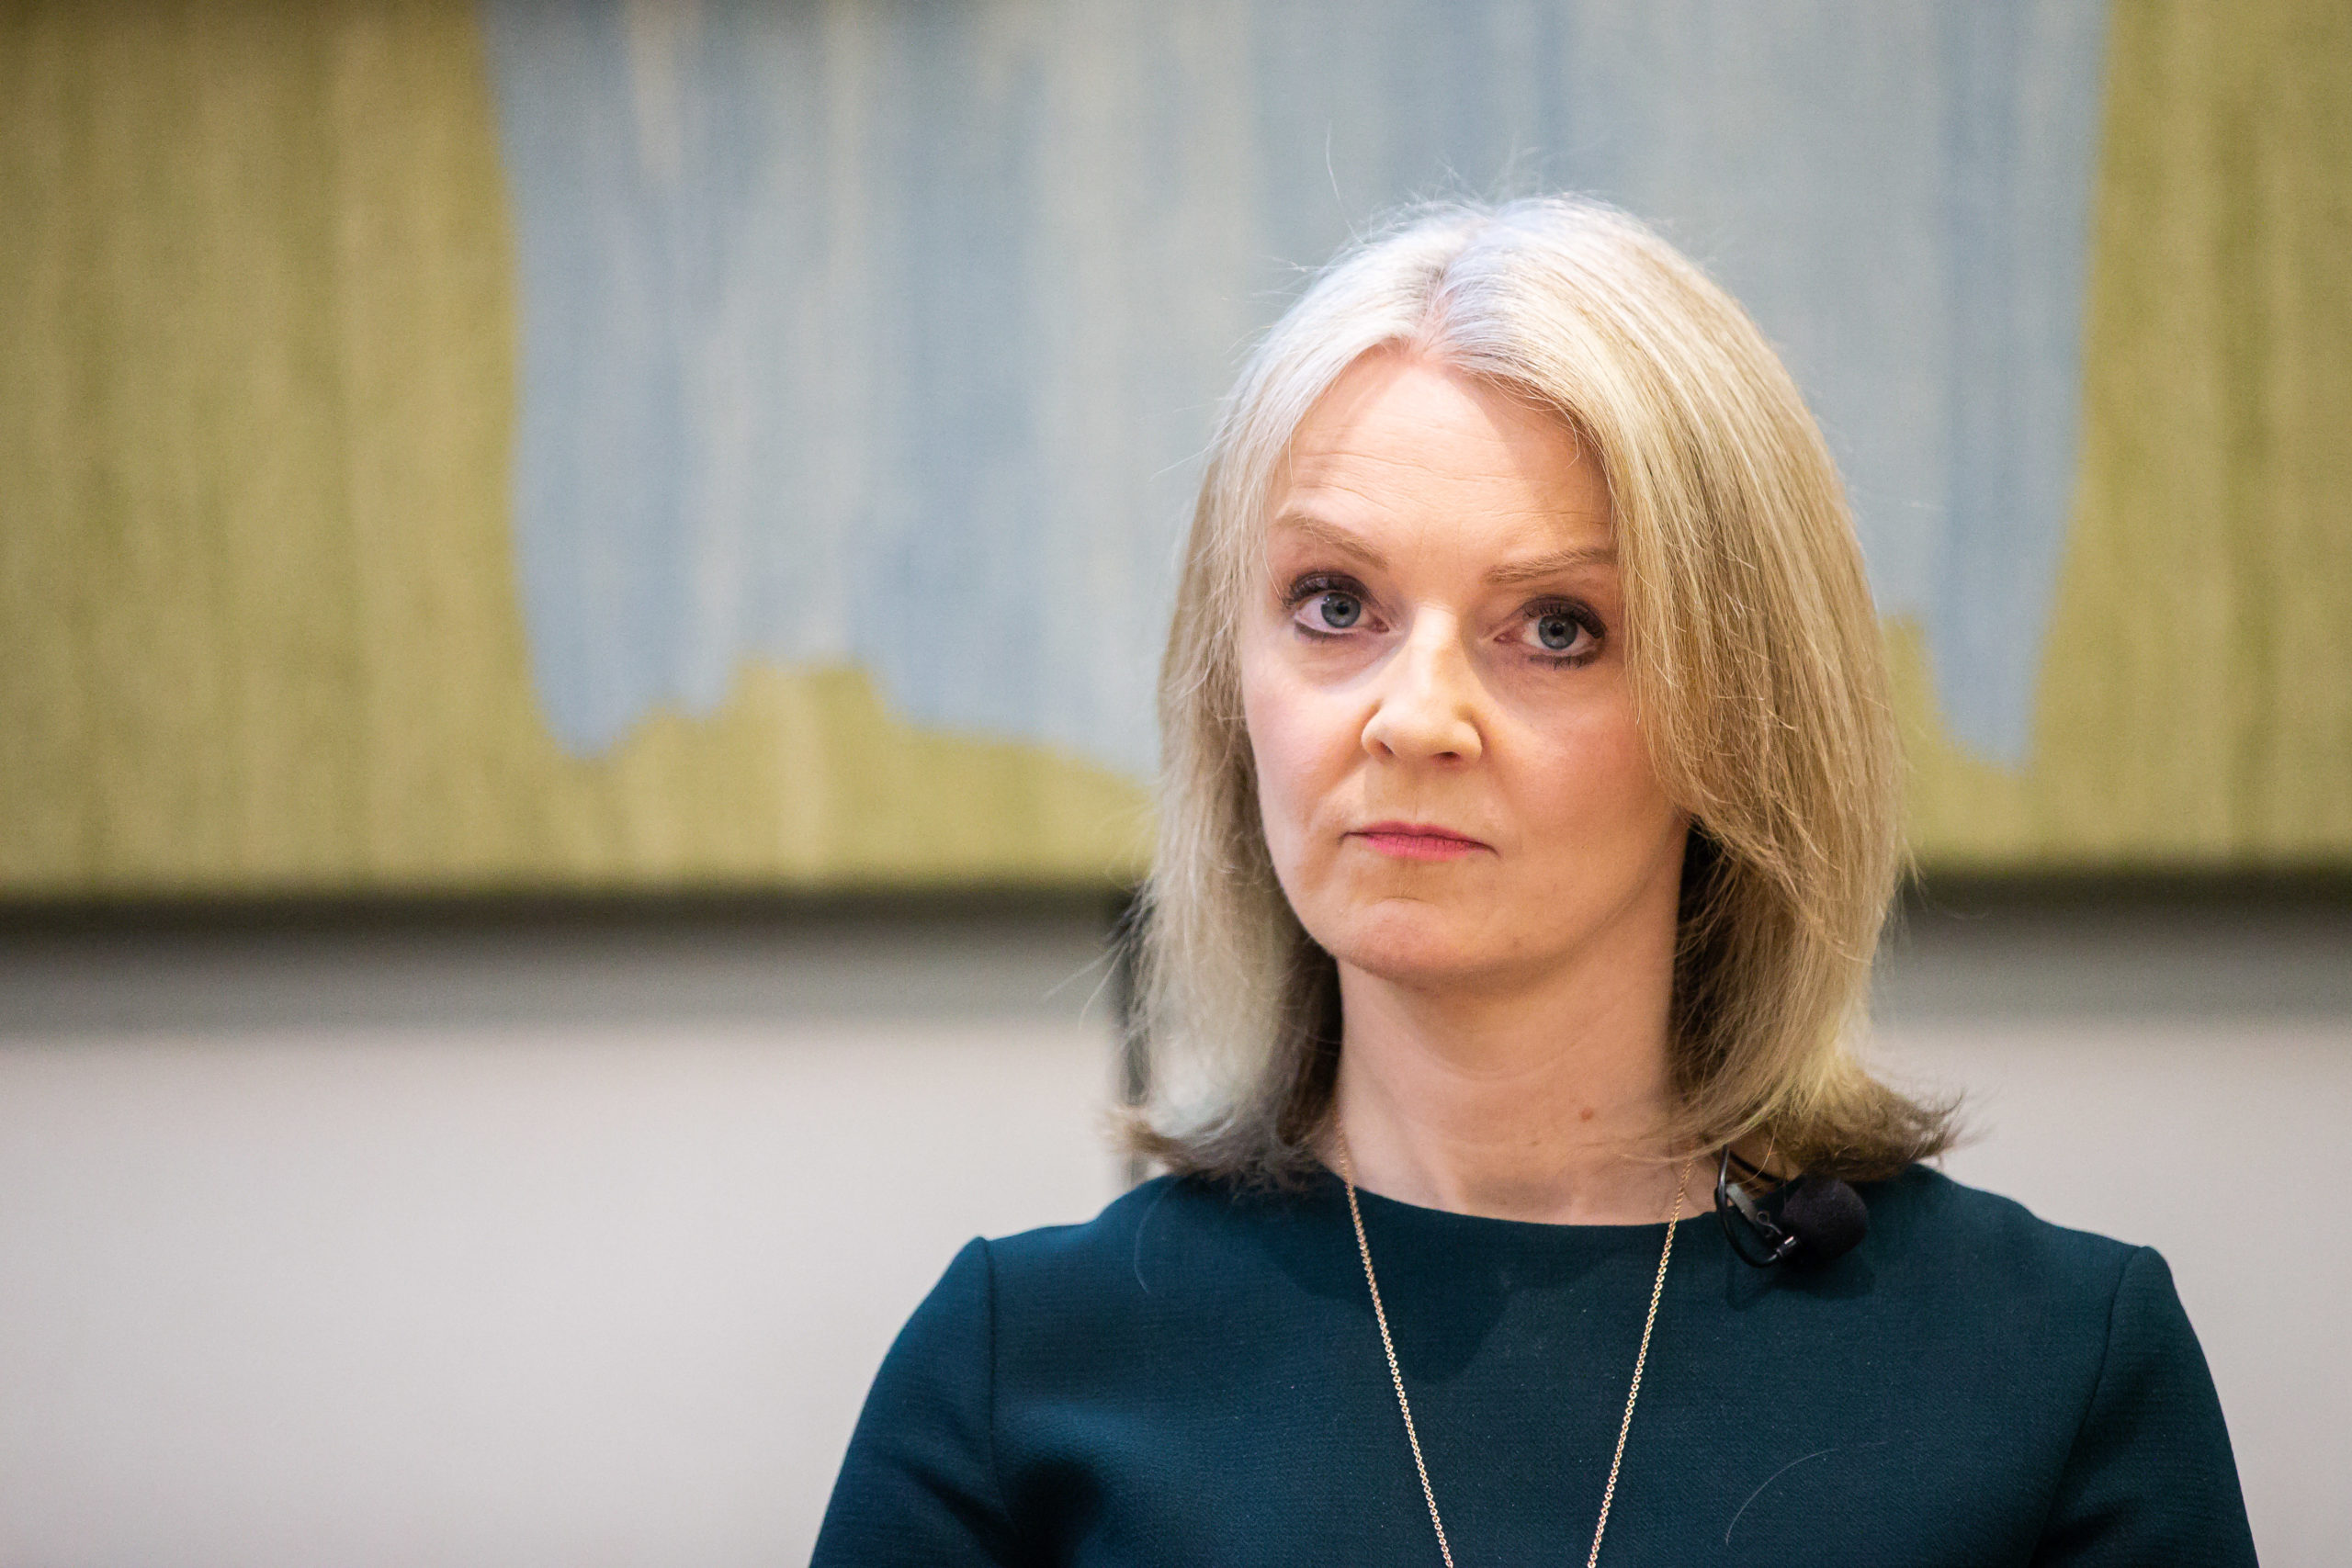 Tory MP: Equalities chief Liz Truss should be sacked over lack of 'empathy'